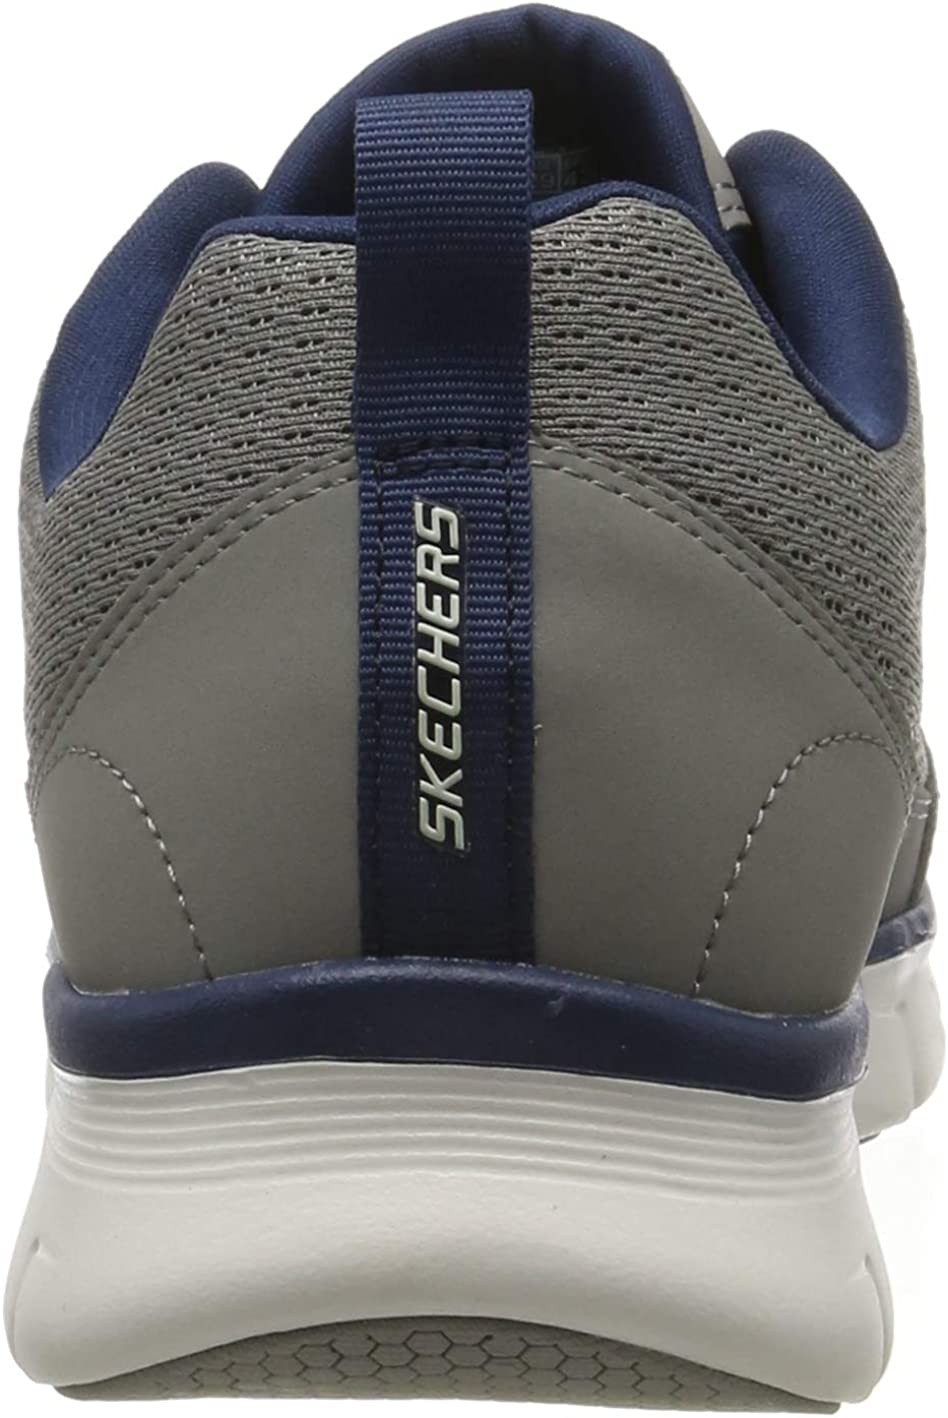 Skechers Men's Synergy 3.0 Trainers Grey Gray Leather Mesh Pu Navy Trim Gy Nv